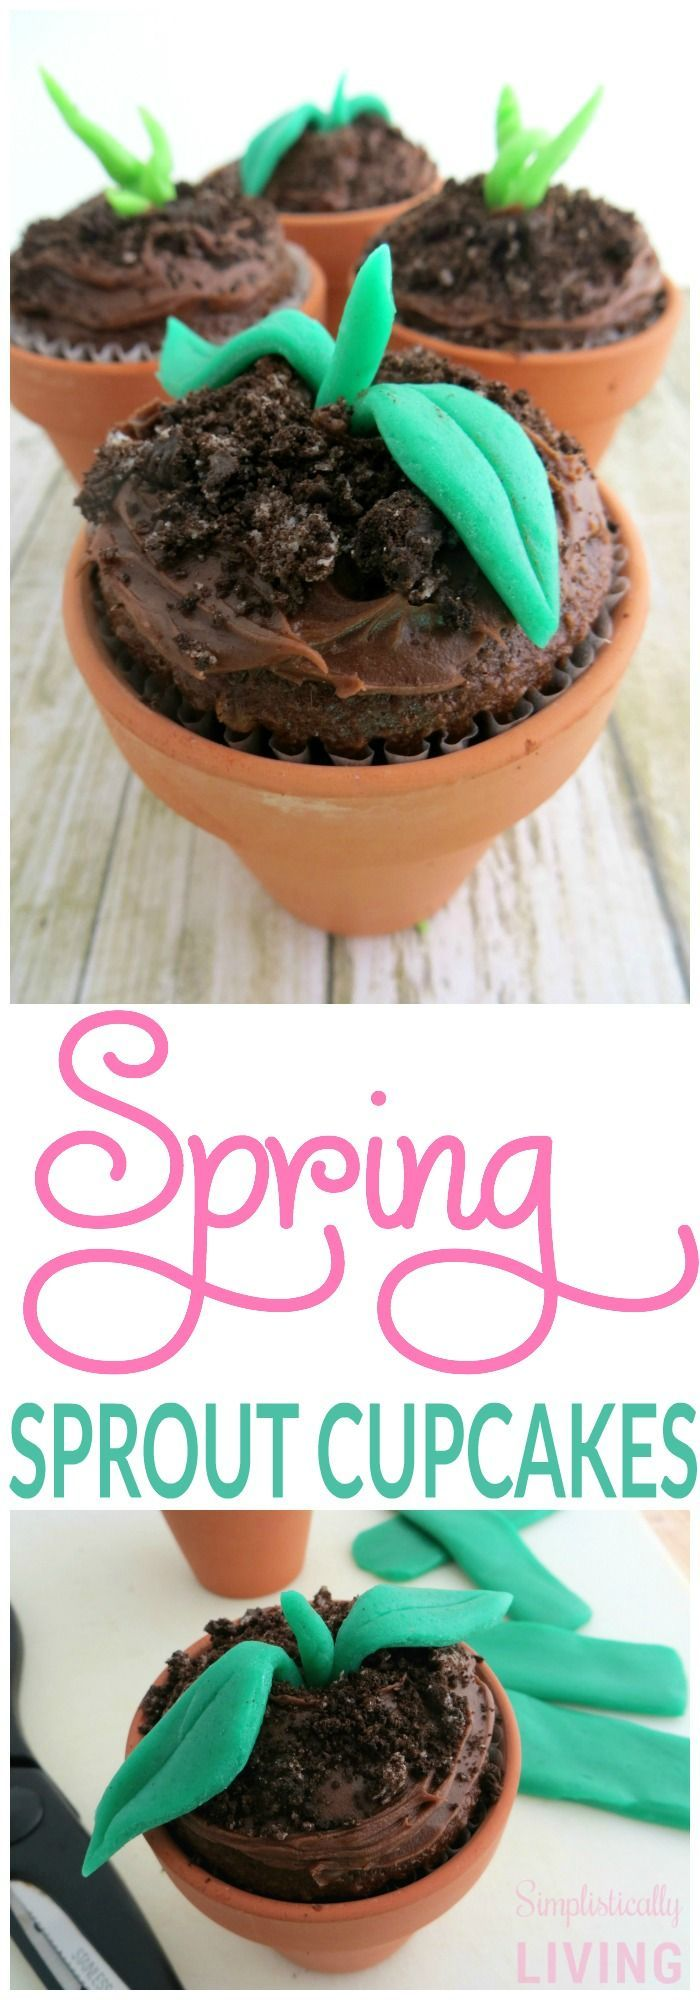 SPRING SPROUT CUPCAKES